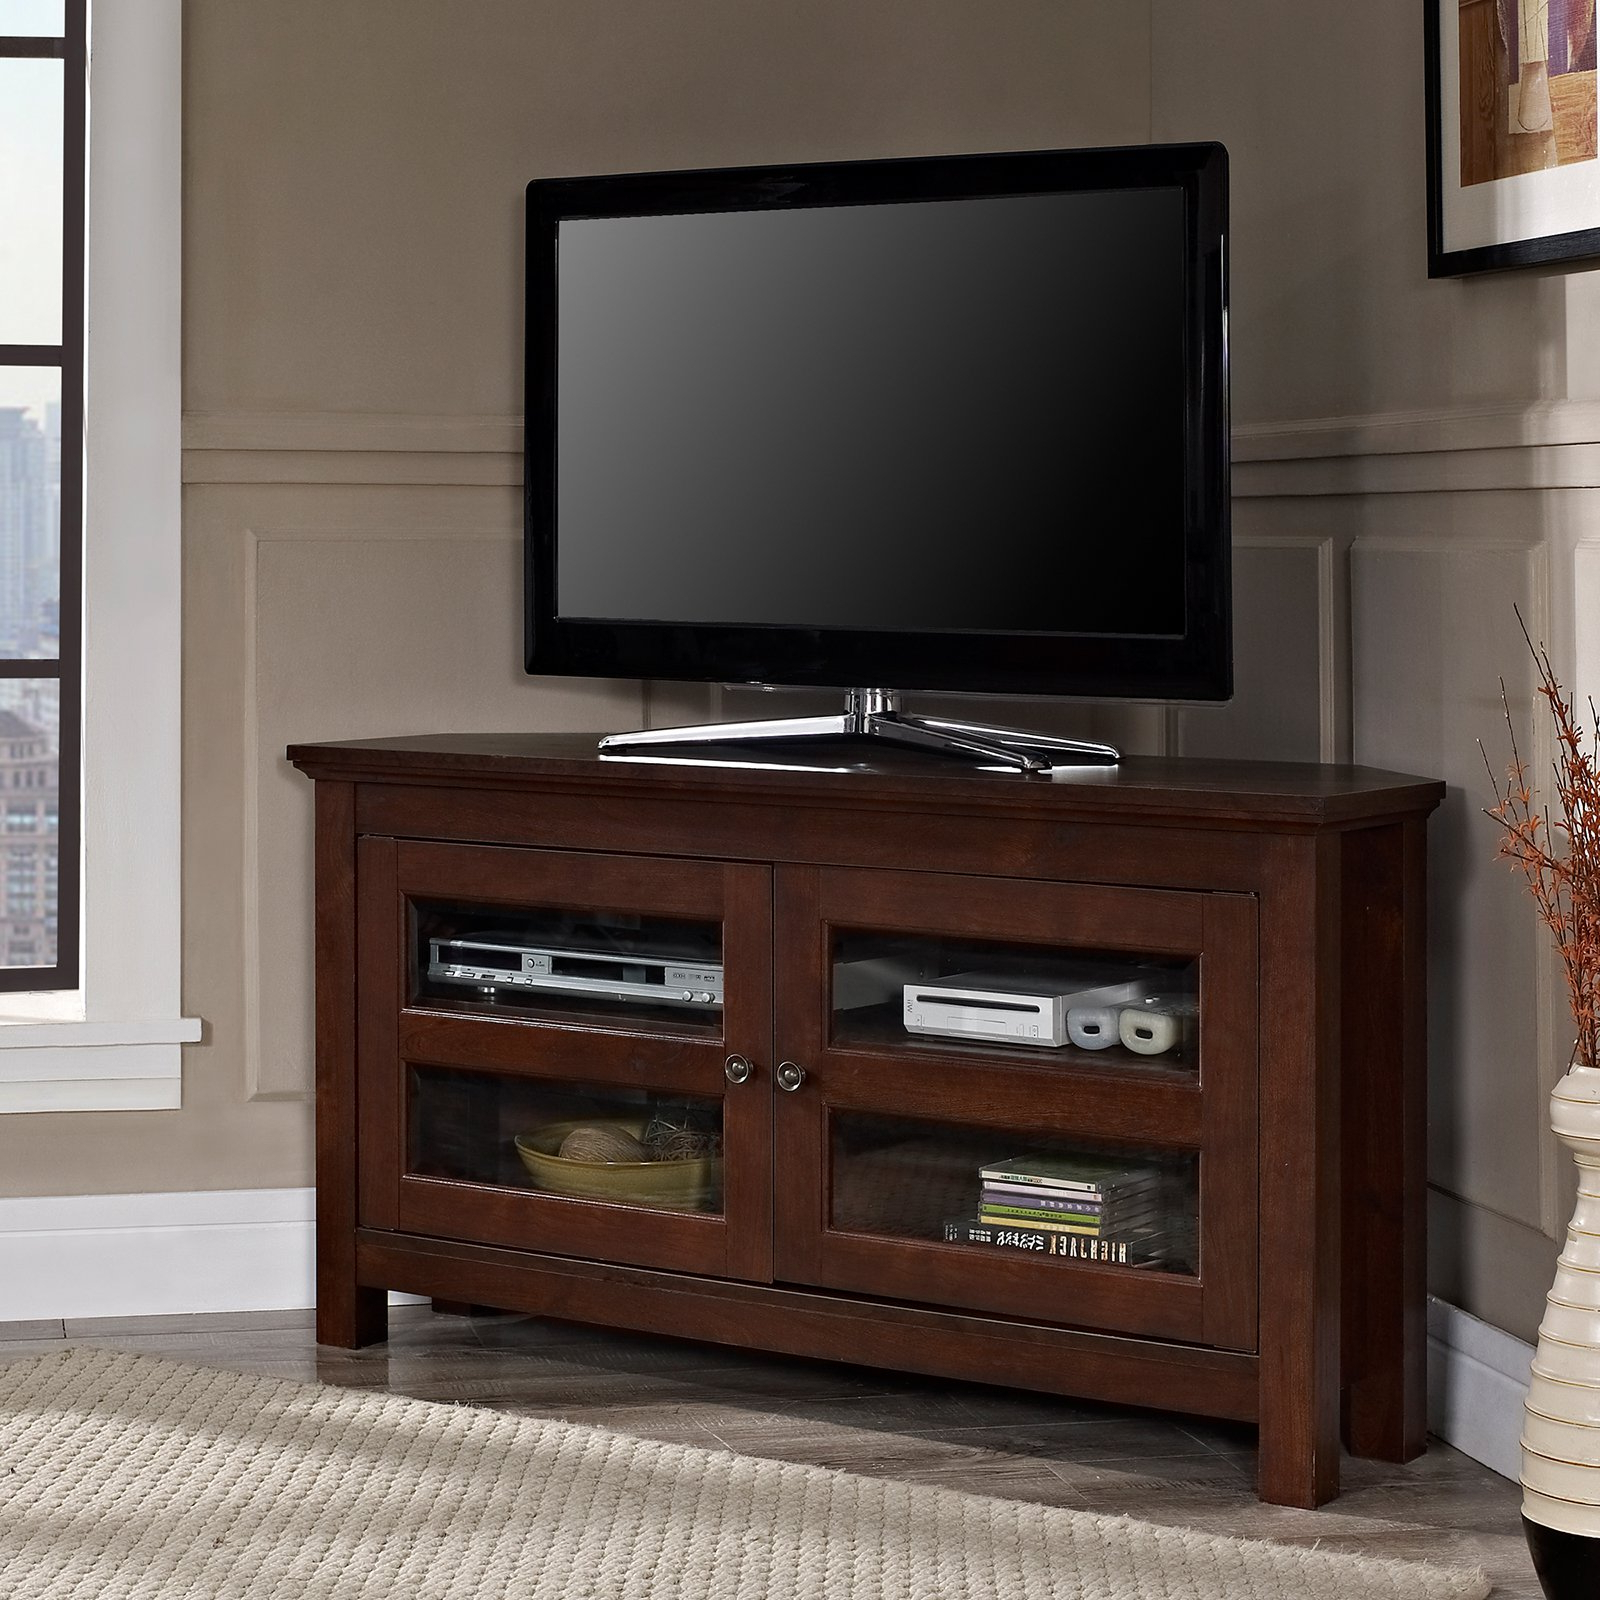 Real Wood Corner Tv Stands With Best And Newest Reclaimed Wood Tv Console Real Stands For Flat Screens Solid Corner (View 17 of 20)